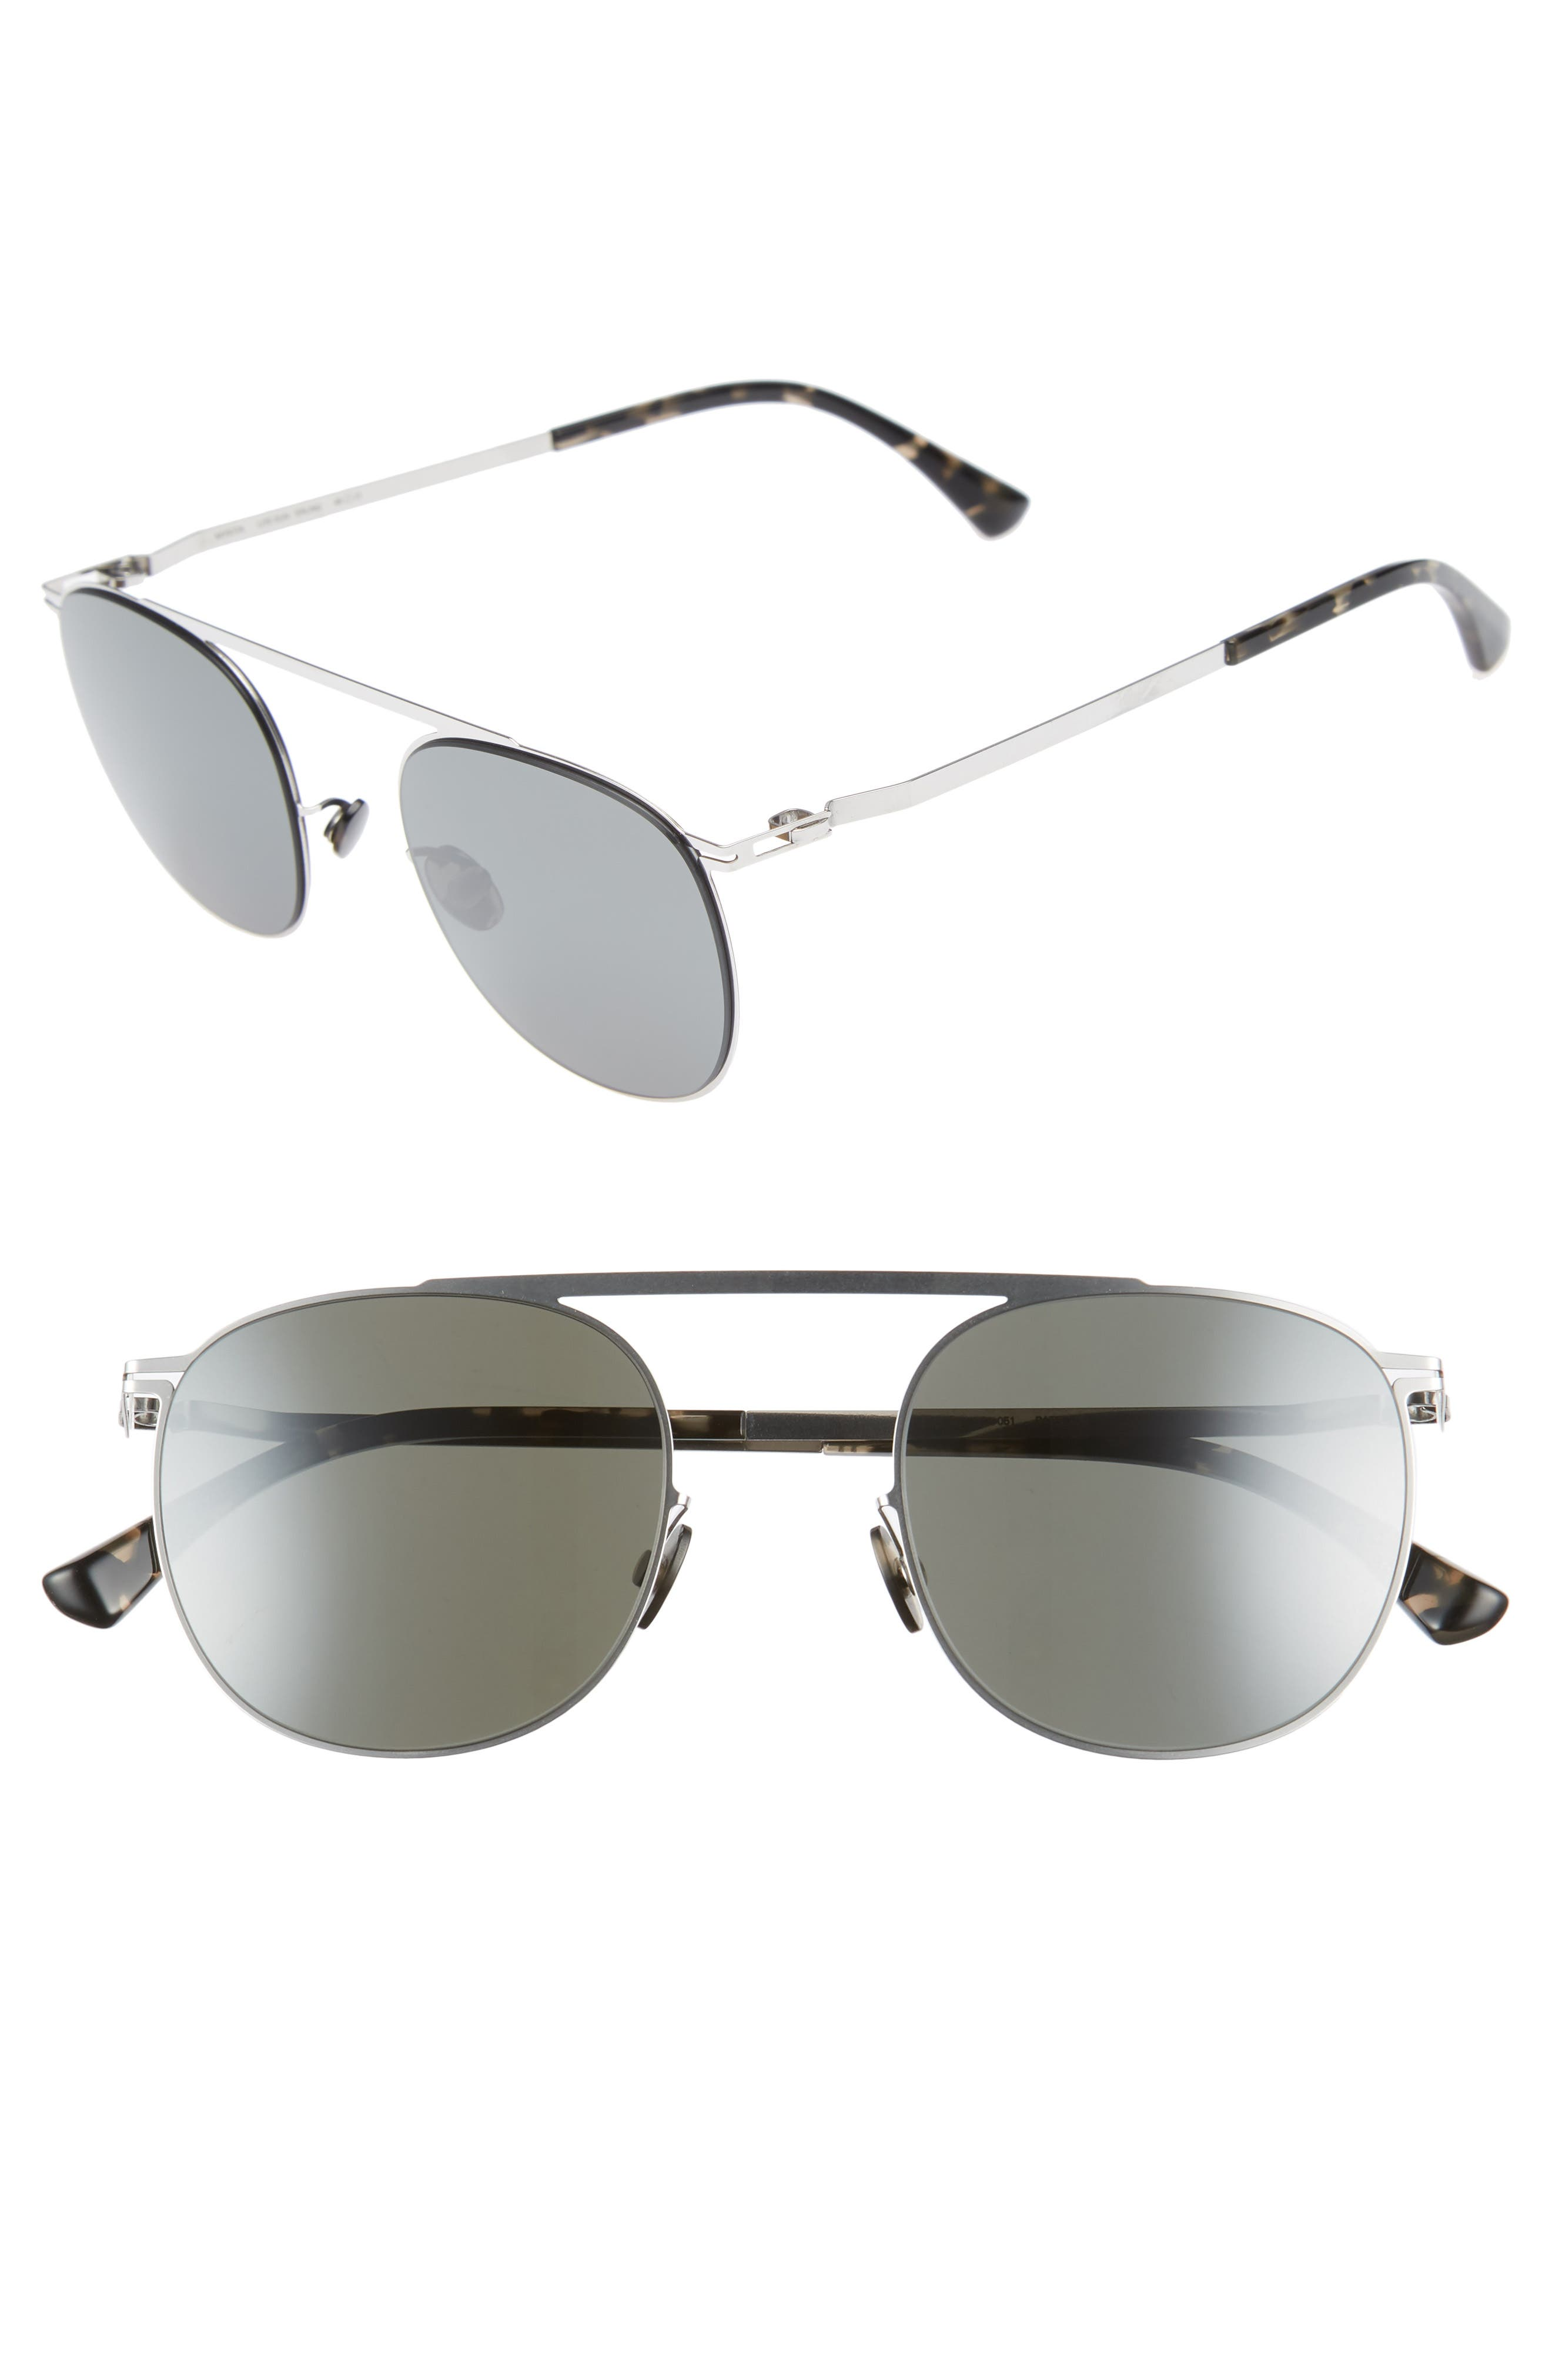 Erling 48mm Mirrored Sunglasses,                         Main,                         color, 041